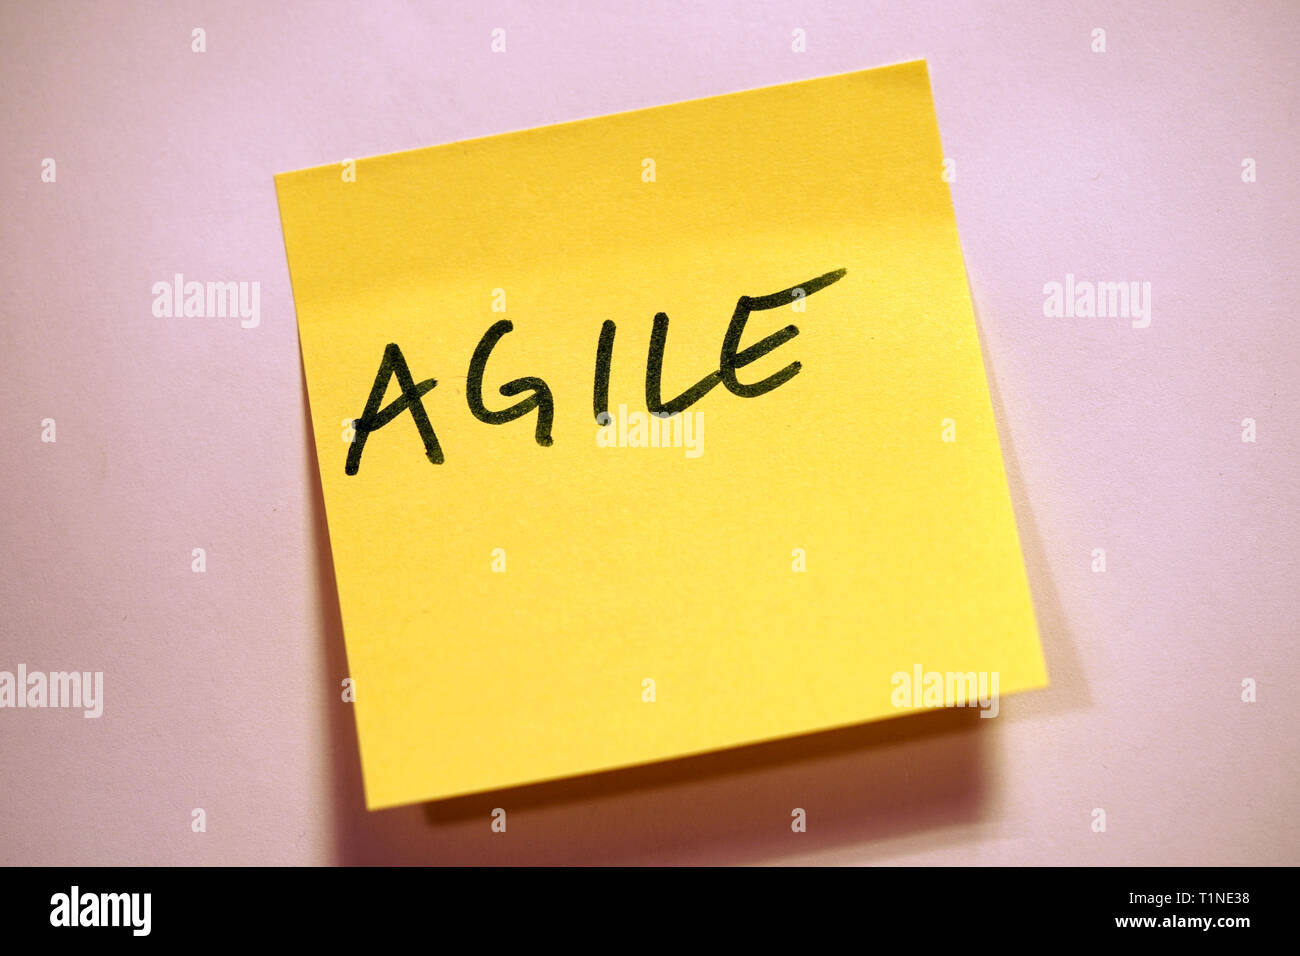 Yellow Sticky Note Scrum Agile - Stock Image